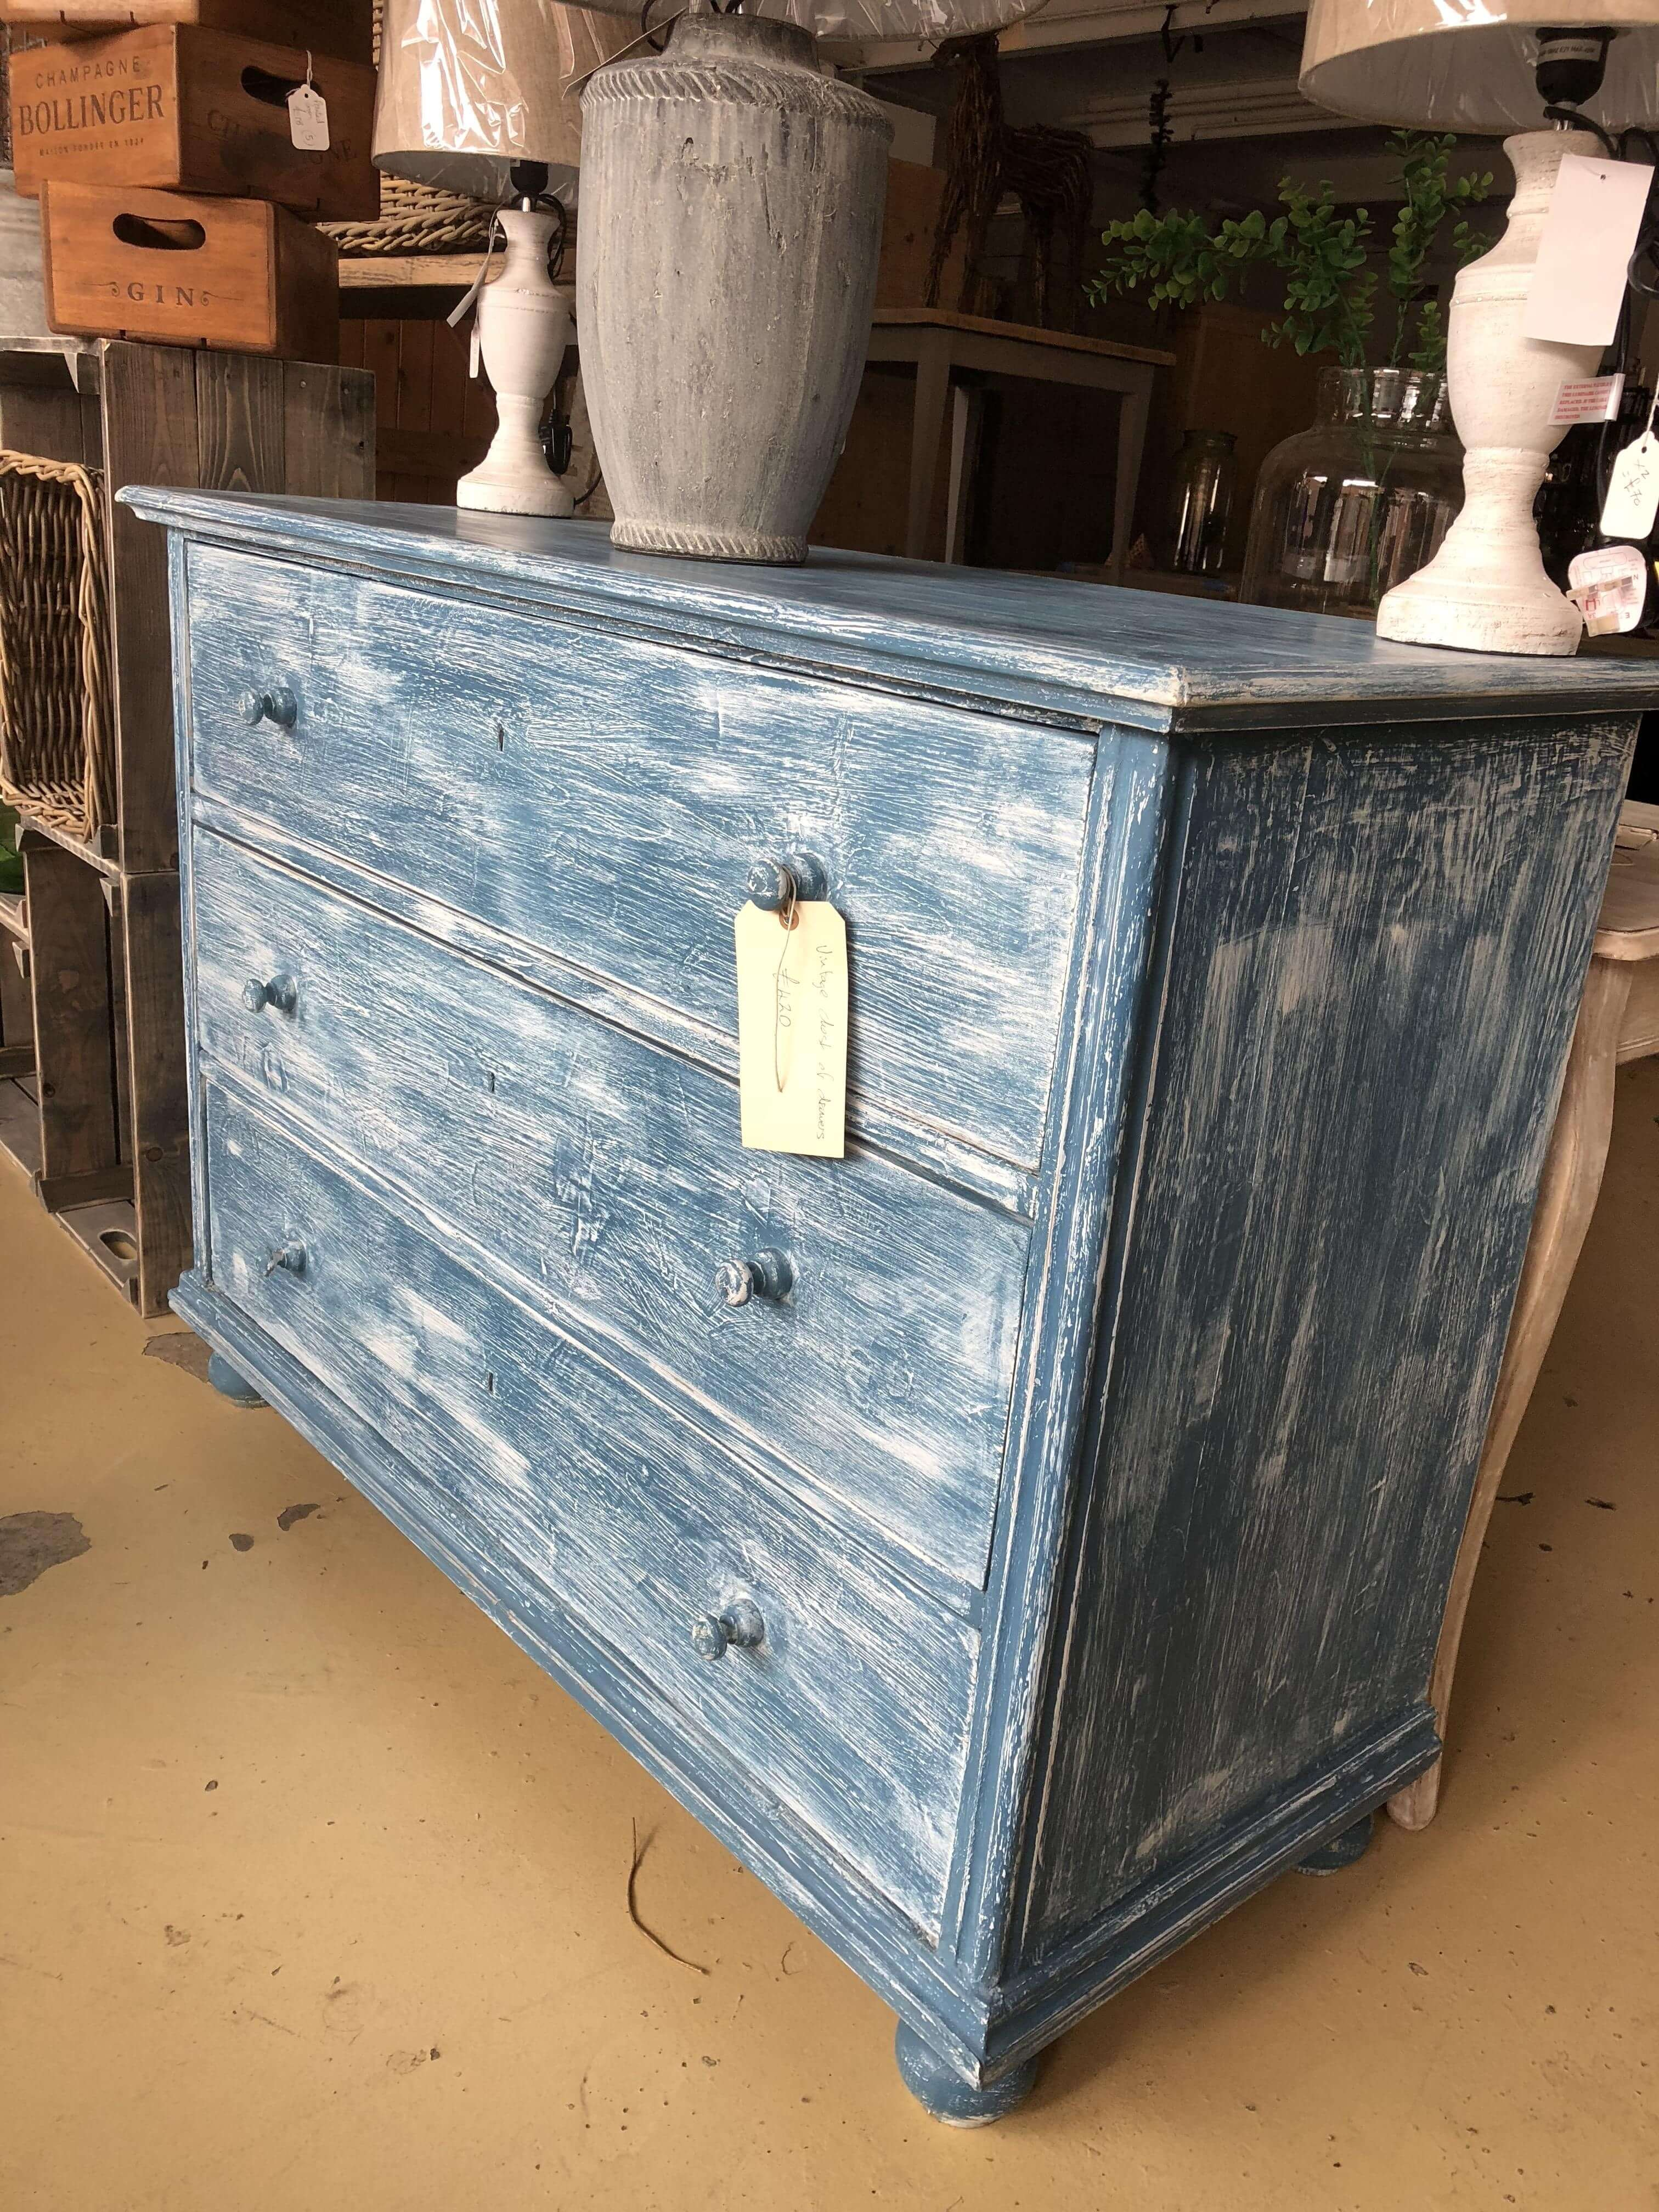 coloured five mesmerizing of bright extraordinary centre stripy quirky gillespie large hooker with appealing british uk painted drawer handcrafted vintage mul twelve chest multi picture images off c bedroom drawers furniture tall